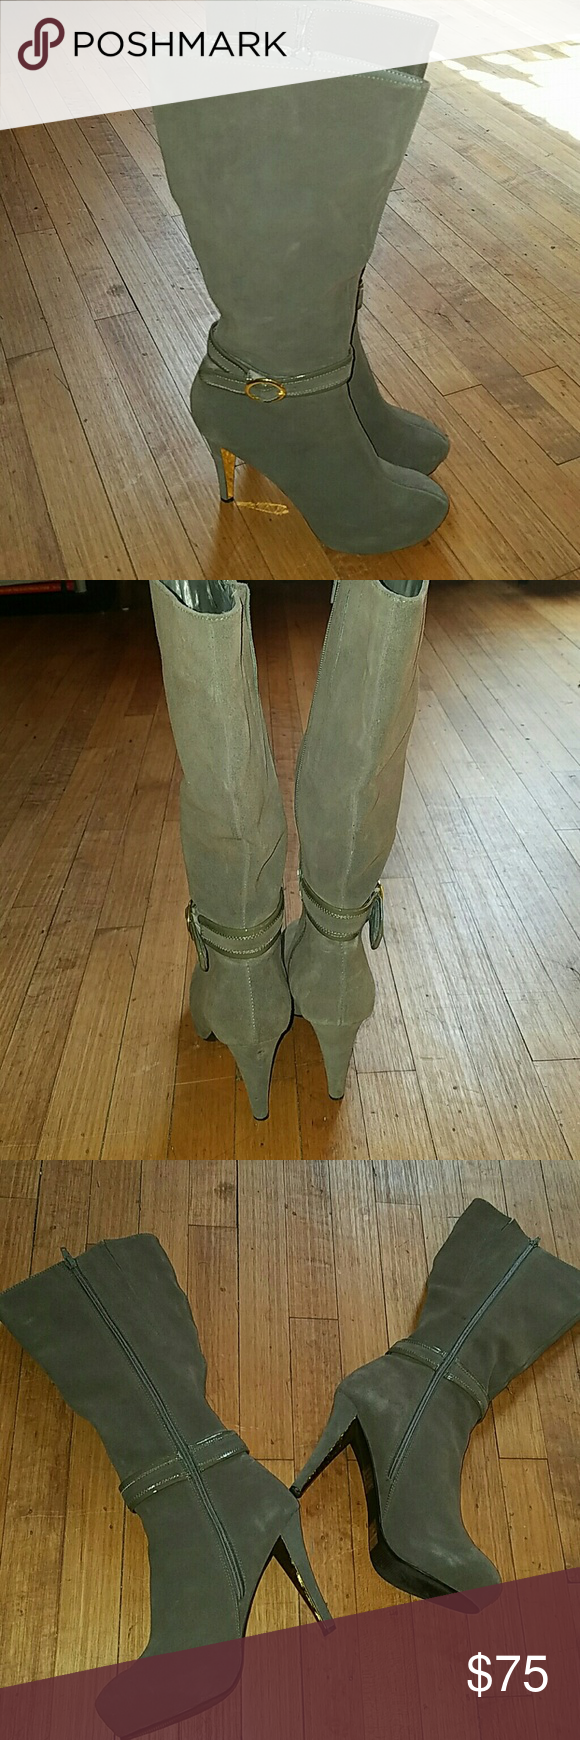 Grey Suede Boots These boots are made for walking?? and being super fashionable too....they are great quality and in great condition(worn once for only a few hours) the material is suede with gold accents on the buckle and on the heel.  There is a platform in the sole and a zipper on the inside of the boot to make them easy to get on Wild Pair Shoes